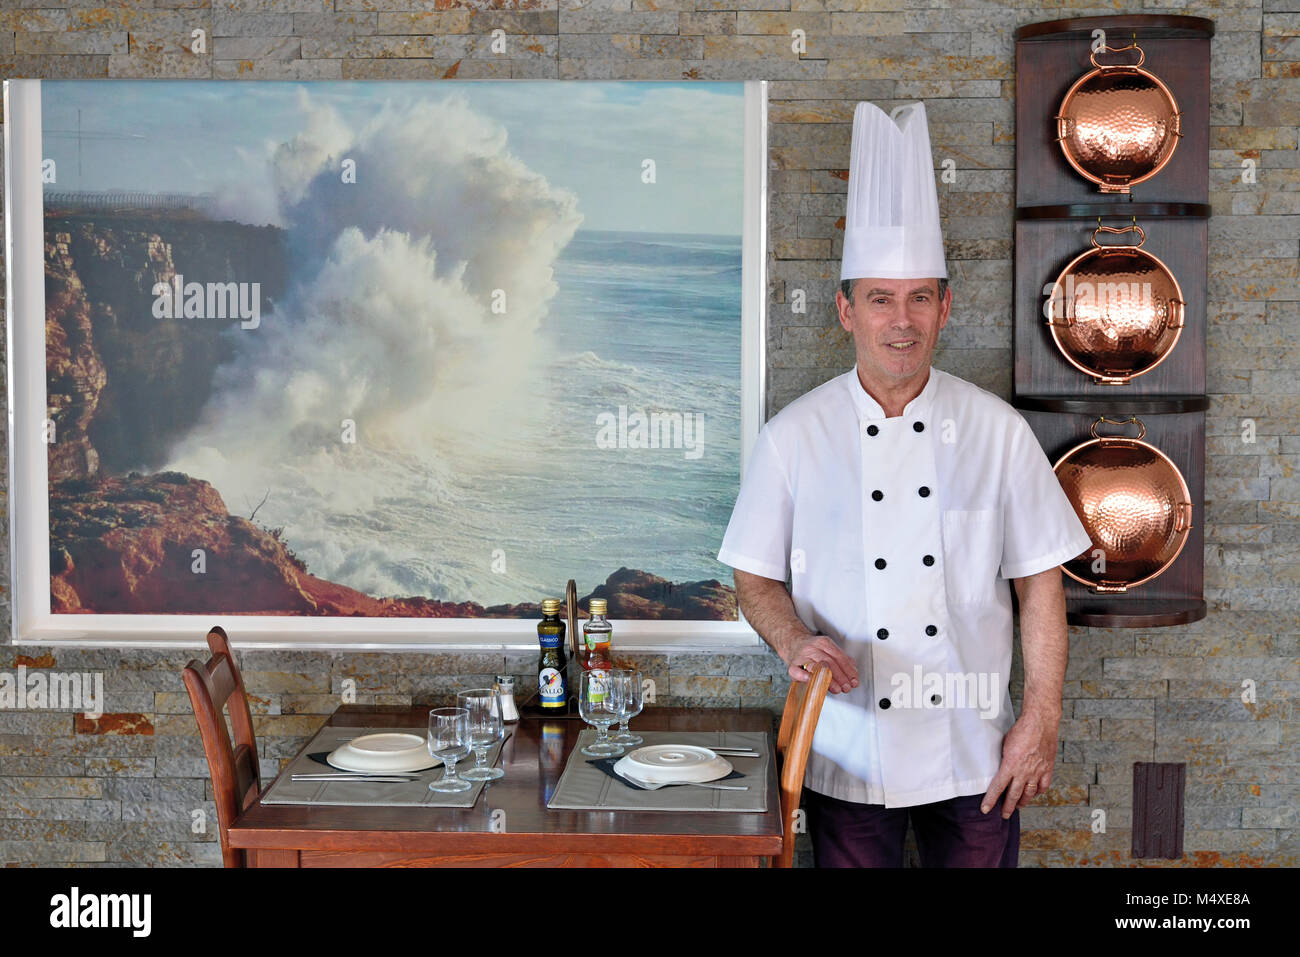 Chef Gilberto Furtado in cooking outfit in his restaurant 'Gigi' in Sagres - Stock Image